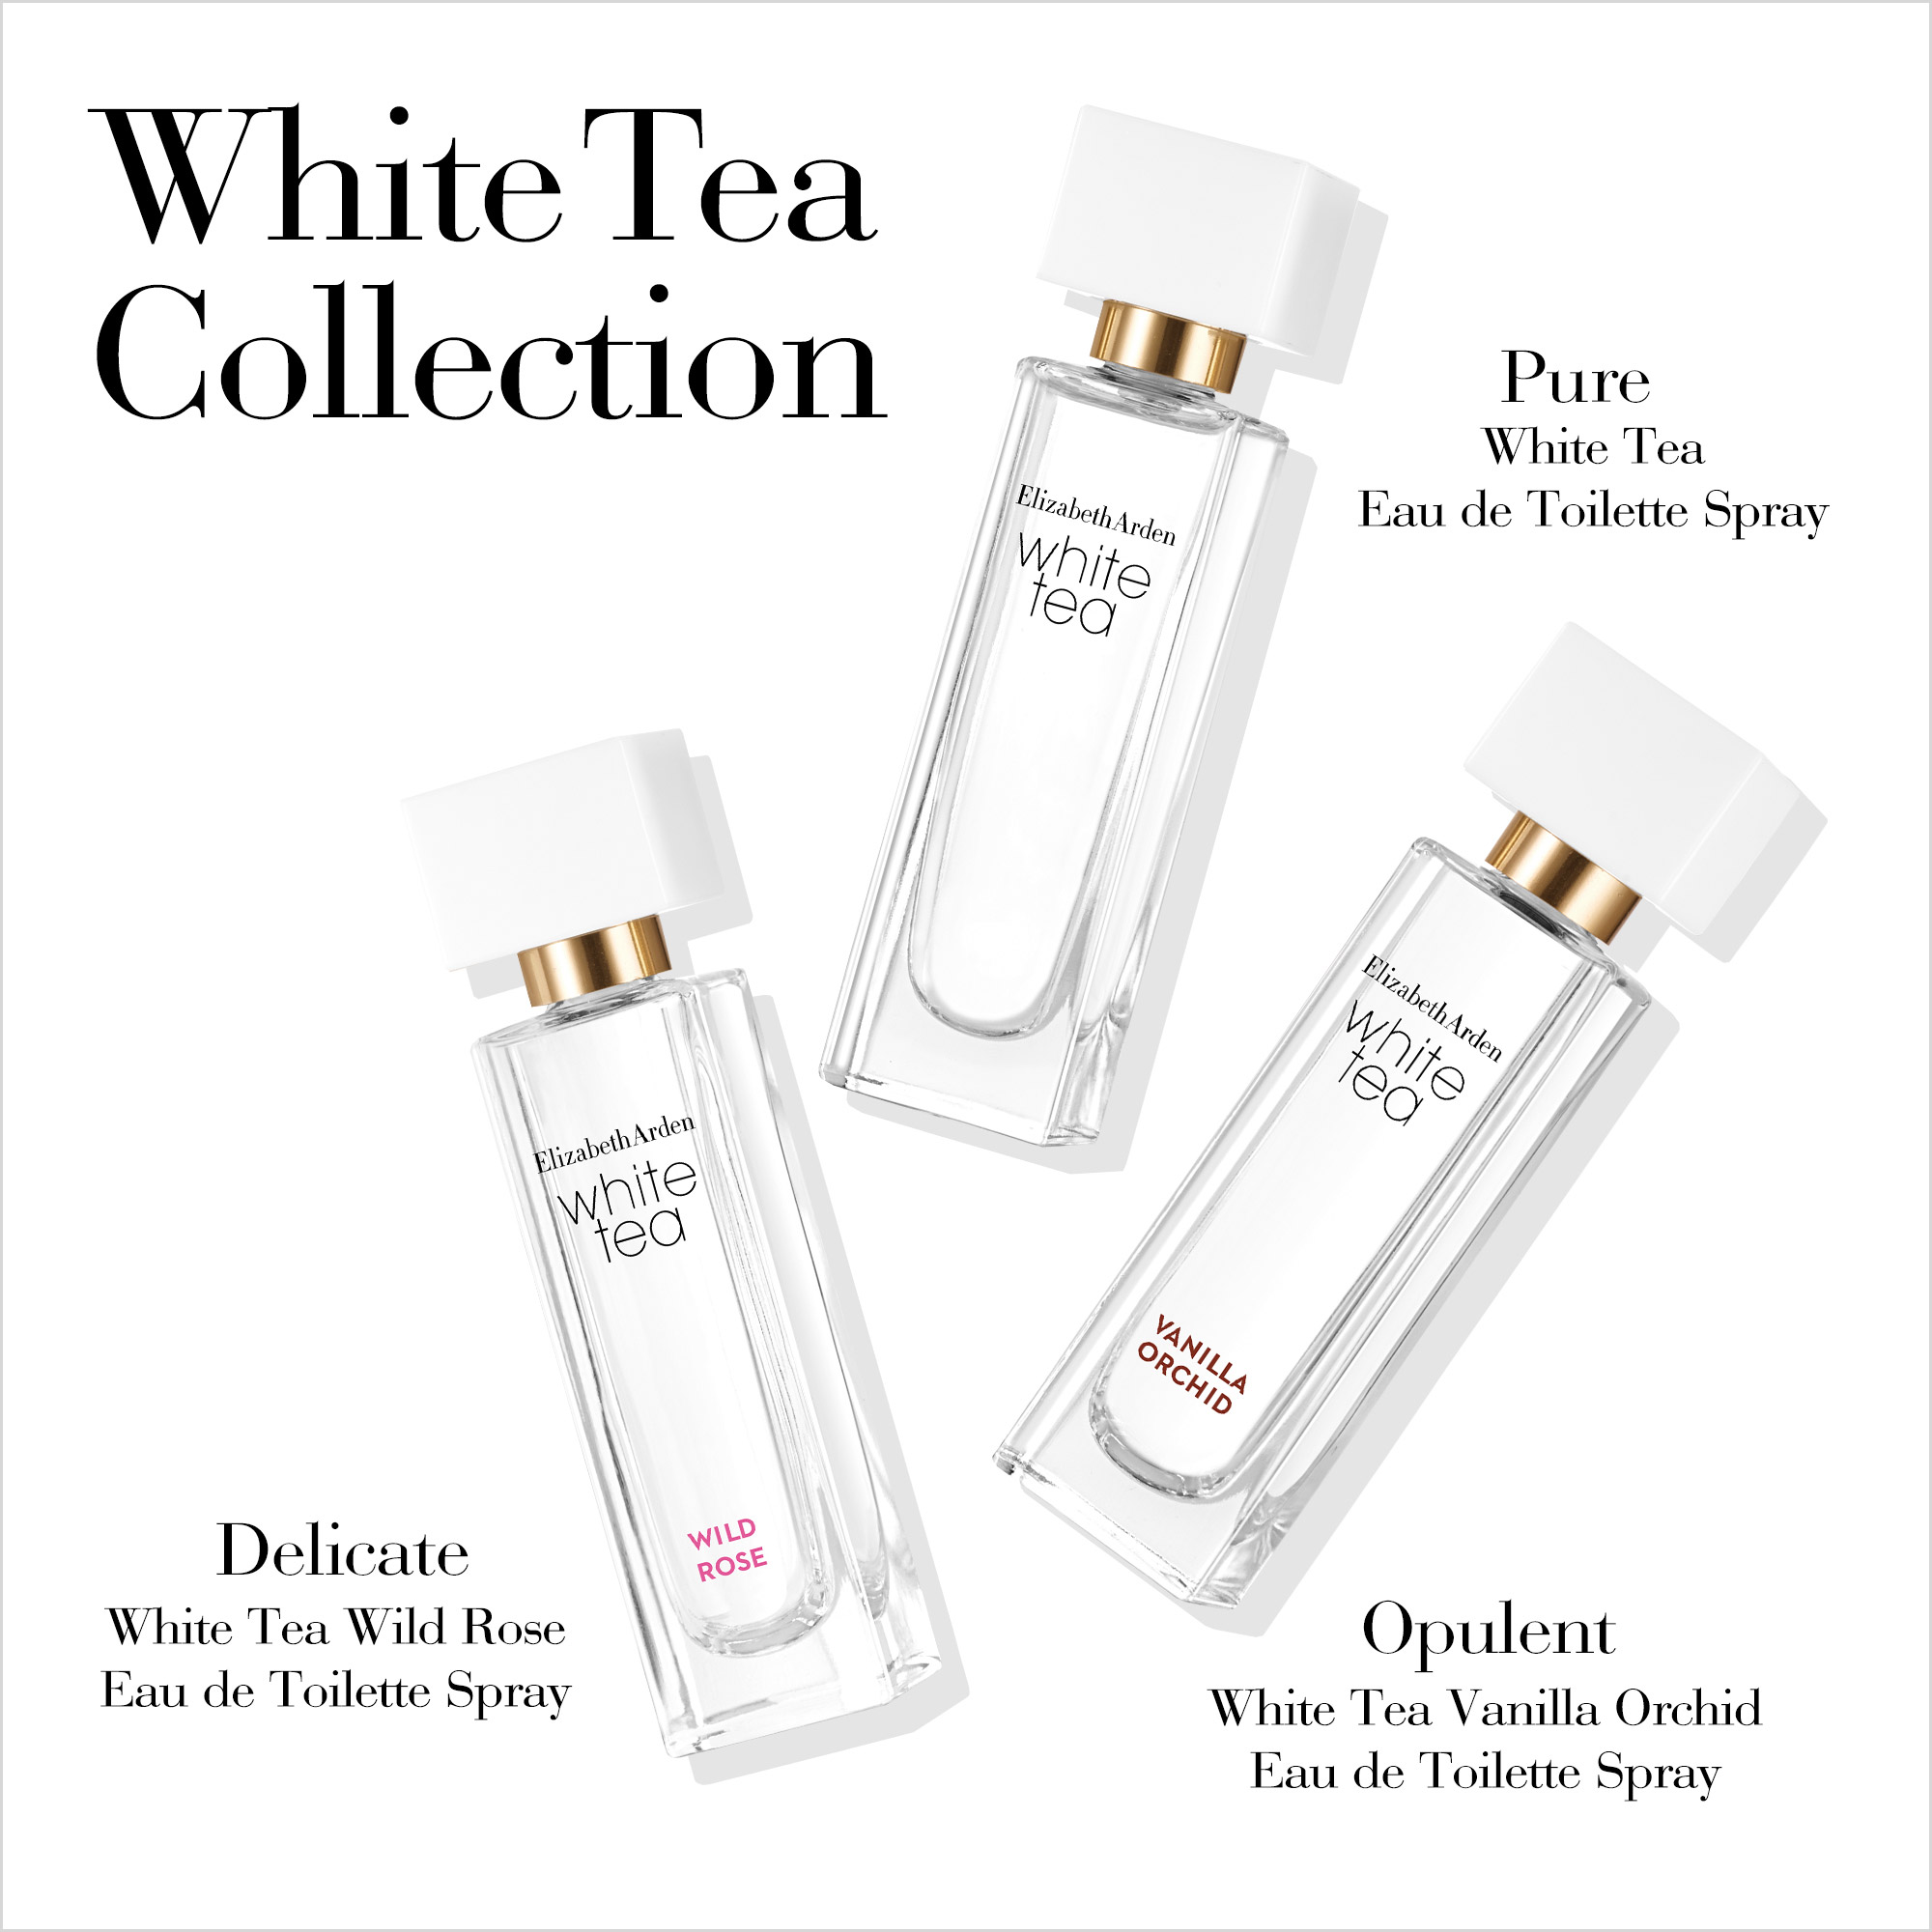 White Tea Collection